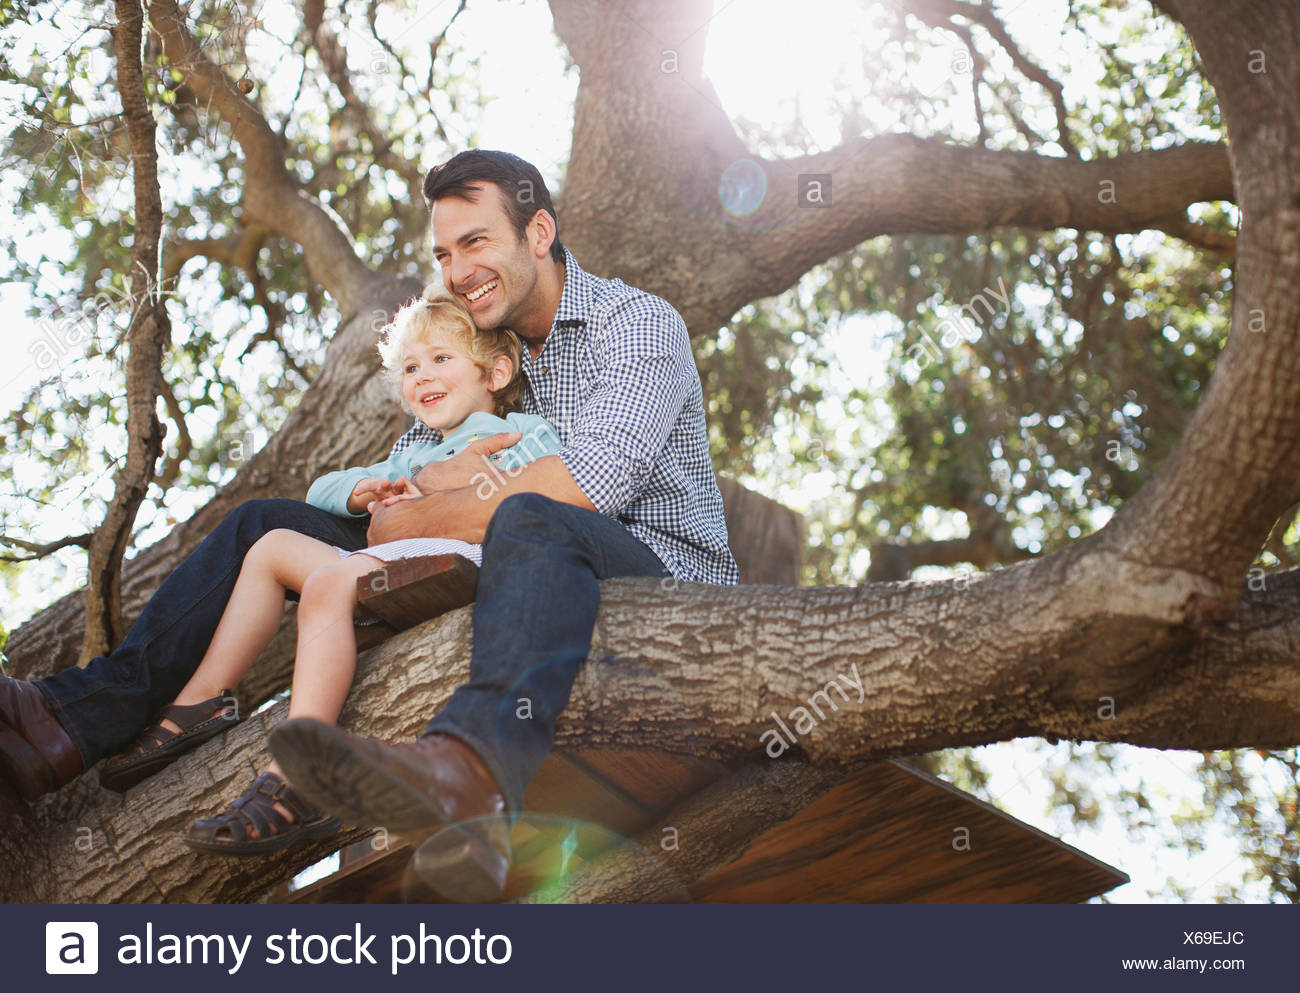 Father and son hugging in tree - Stock Image